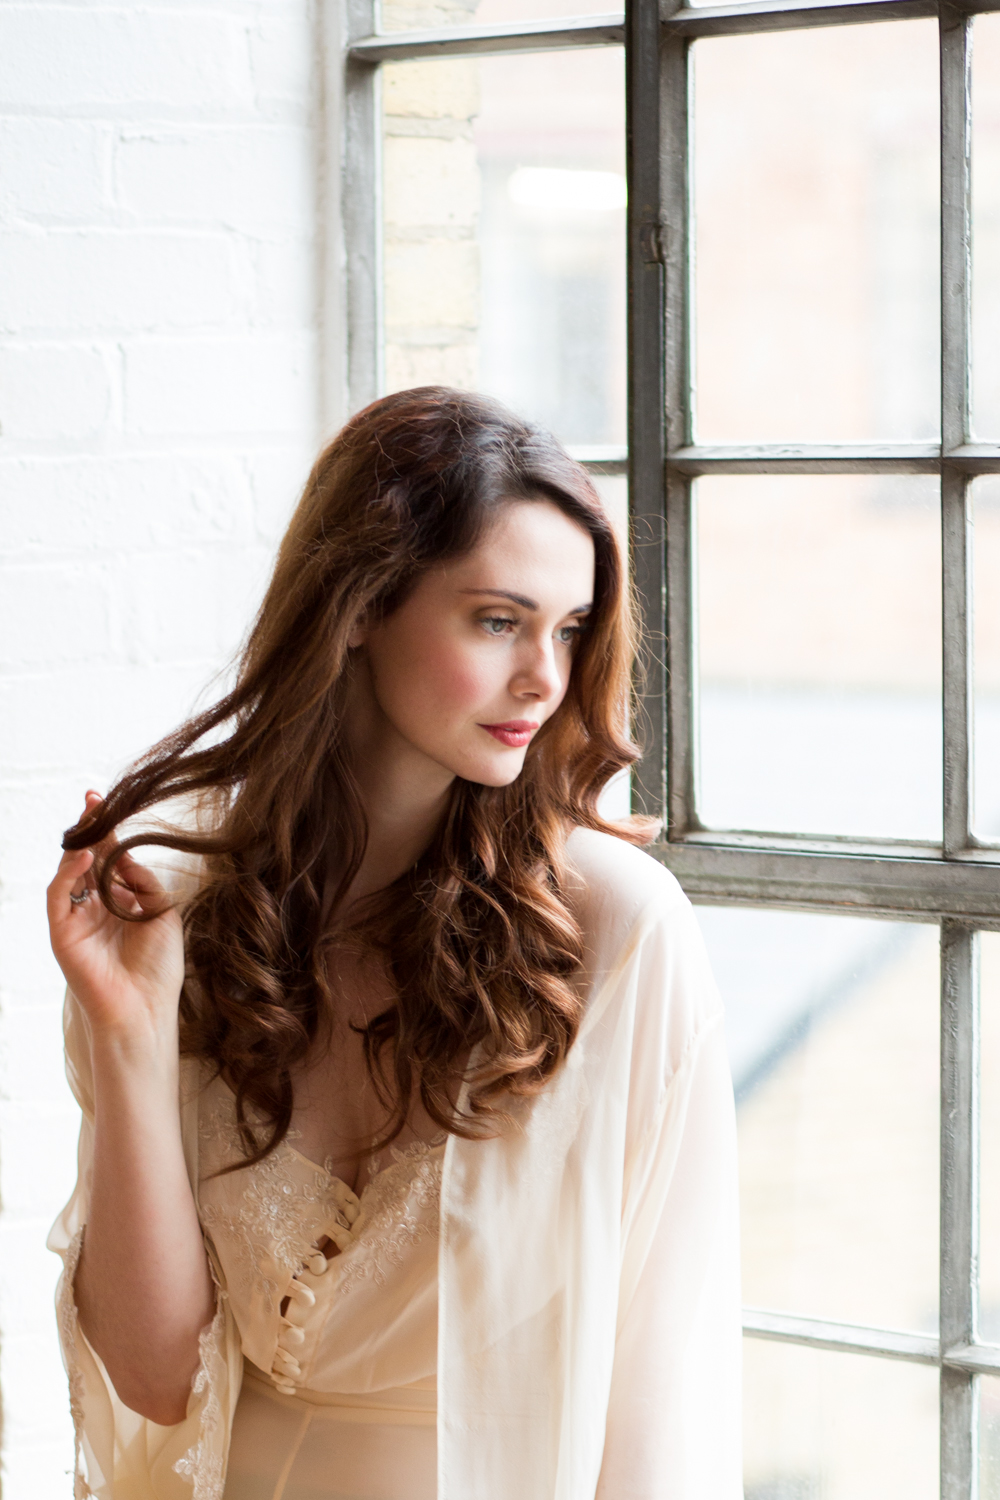 The Timeless Stylist-UK Wedding Styling-Elegant and Romantic Style Boudoir Shoot-Bride Getting Ready-Bridal Lingerie